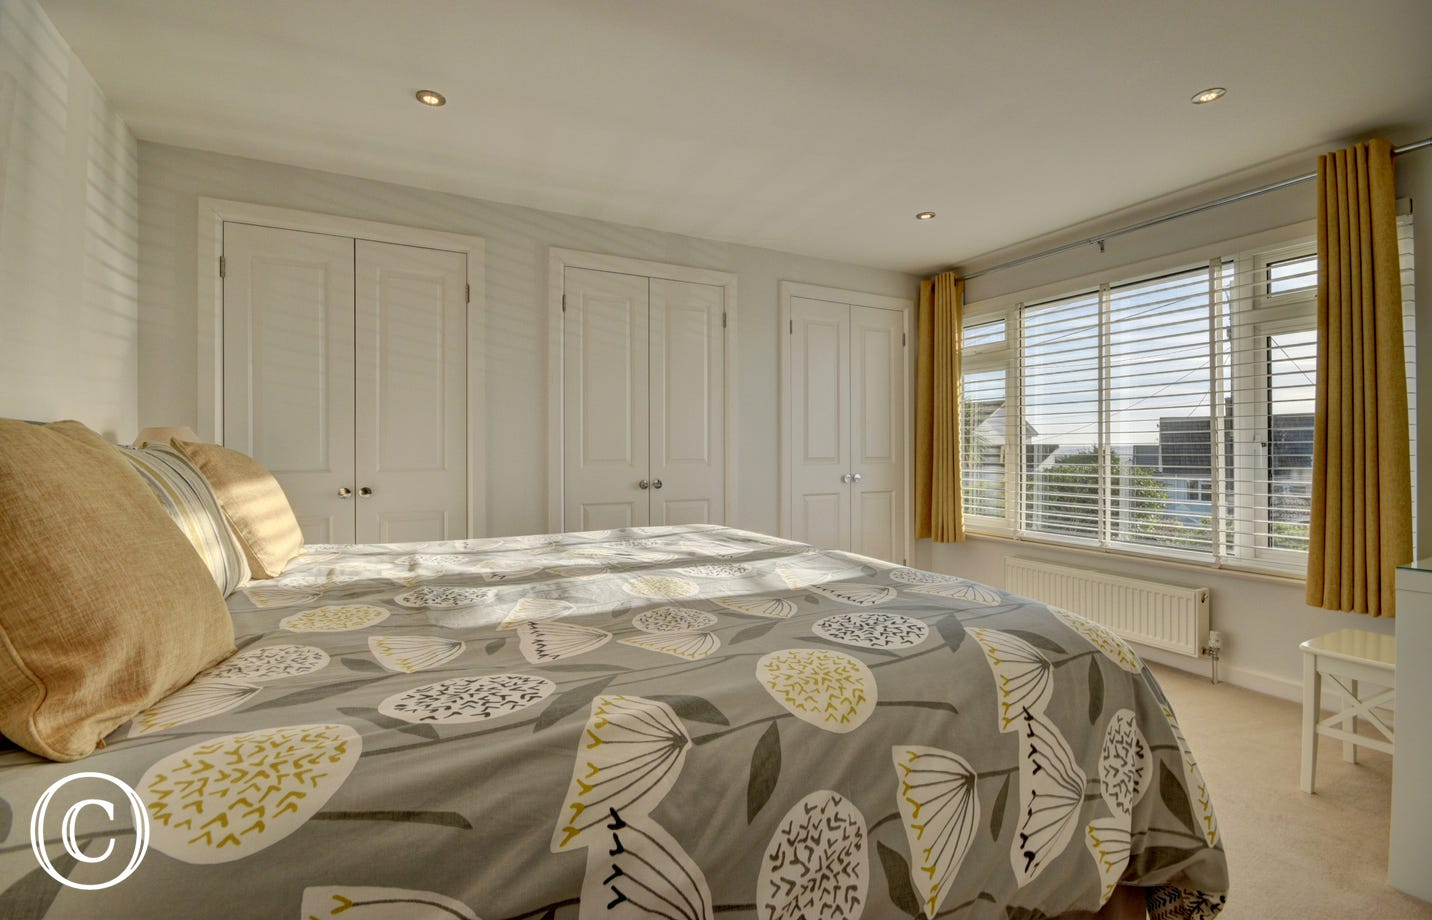 The master bedroom has two floor-to-ceiling built in wardrobes and large window with views over the front garden